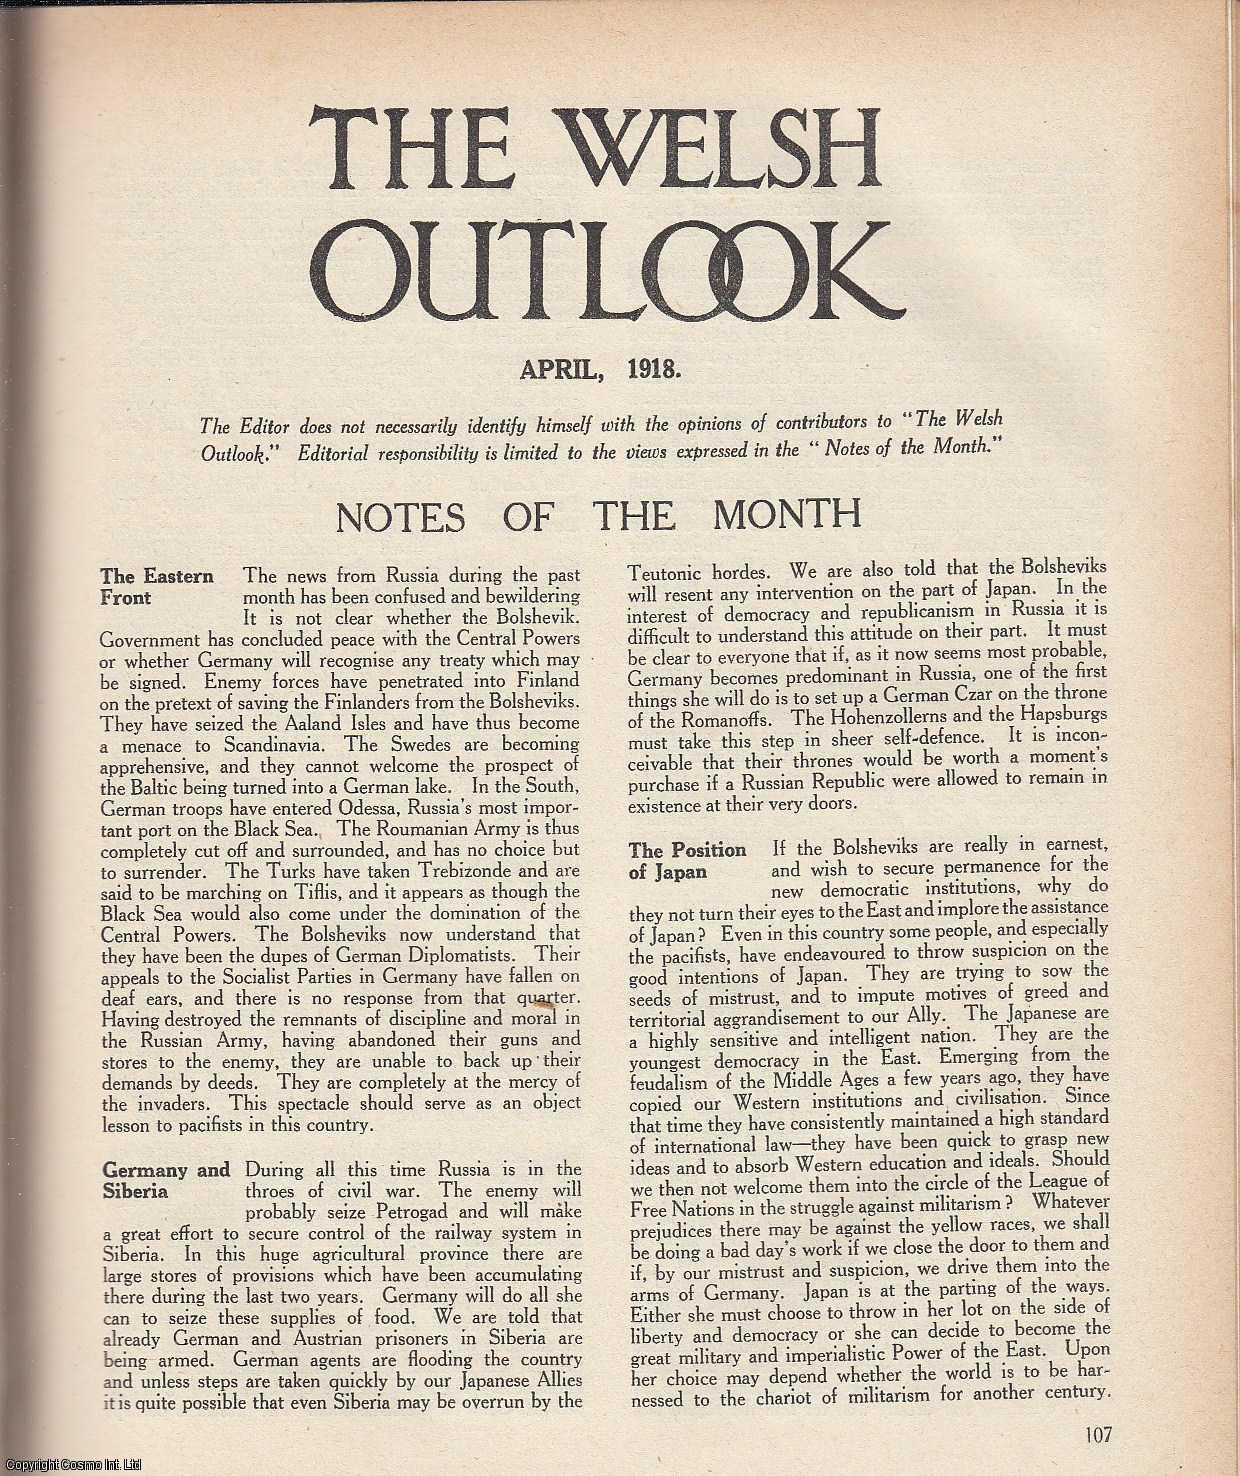 The Welsh Outlook. A Monthly Journal of National Social Progress. April, 1918. Contains; The Political Future of Wales by David Thomas; Labour and Welsh Autonomy; Comments of Welsh Labour Men & others; Nationality and Home Rule by J. Arthur Price; Wales: Its Politics and Economics: Housing, Industrial and Rural by E.T. John; Trench-French by Fred Ambrose; The Church and Labour - A Symposium: The Criticisms Examined by Herbert Morgan; Some of The Royal Welsh by G.J.; Syndicalist Education by R.T. Jenkins., Thomas Jones (Editor)